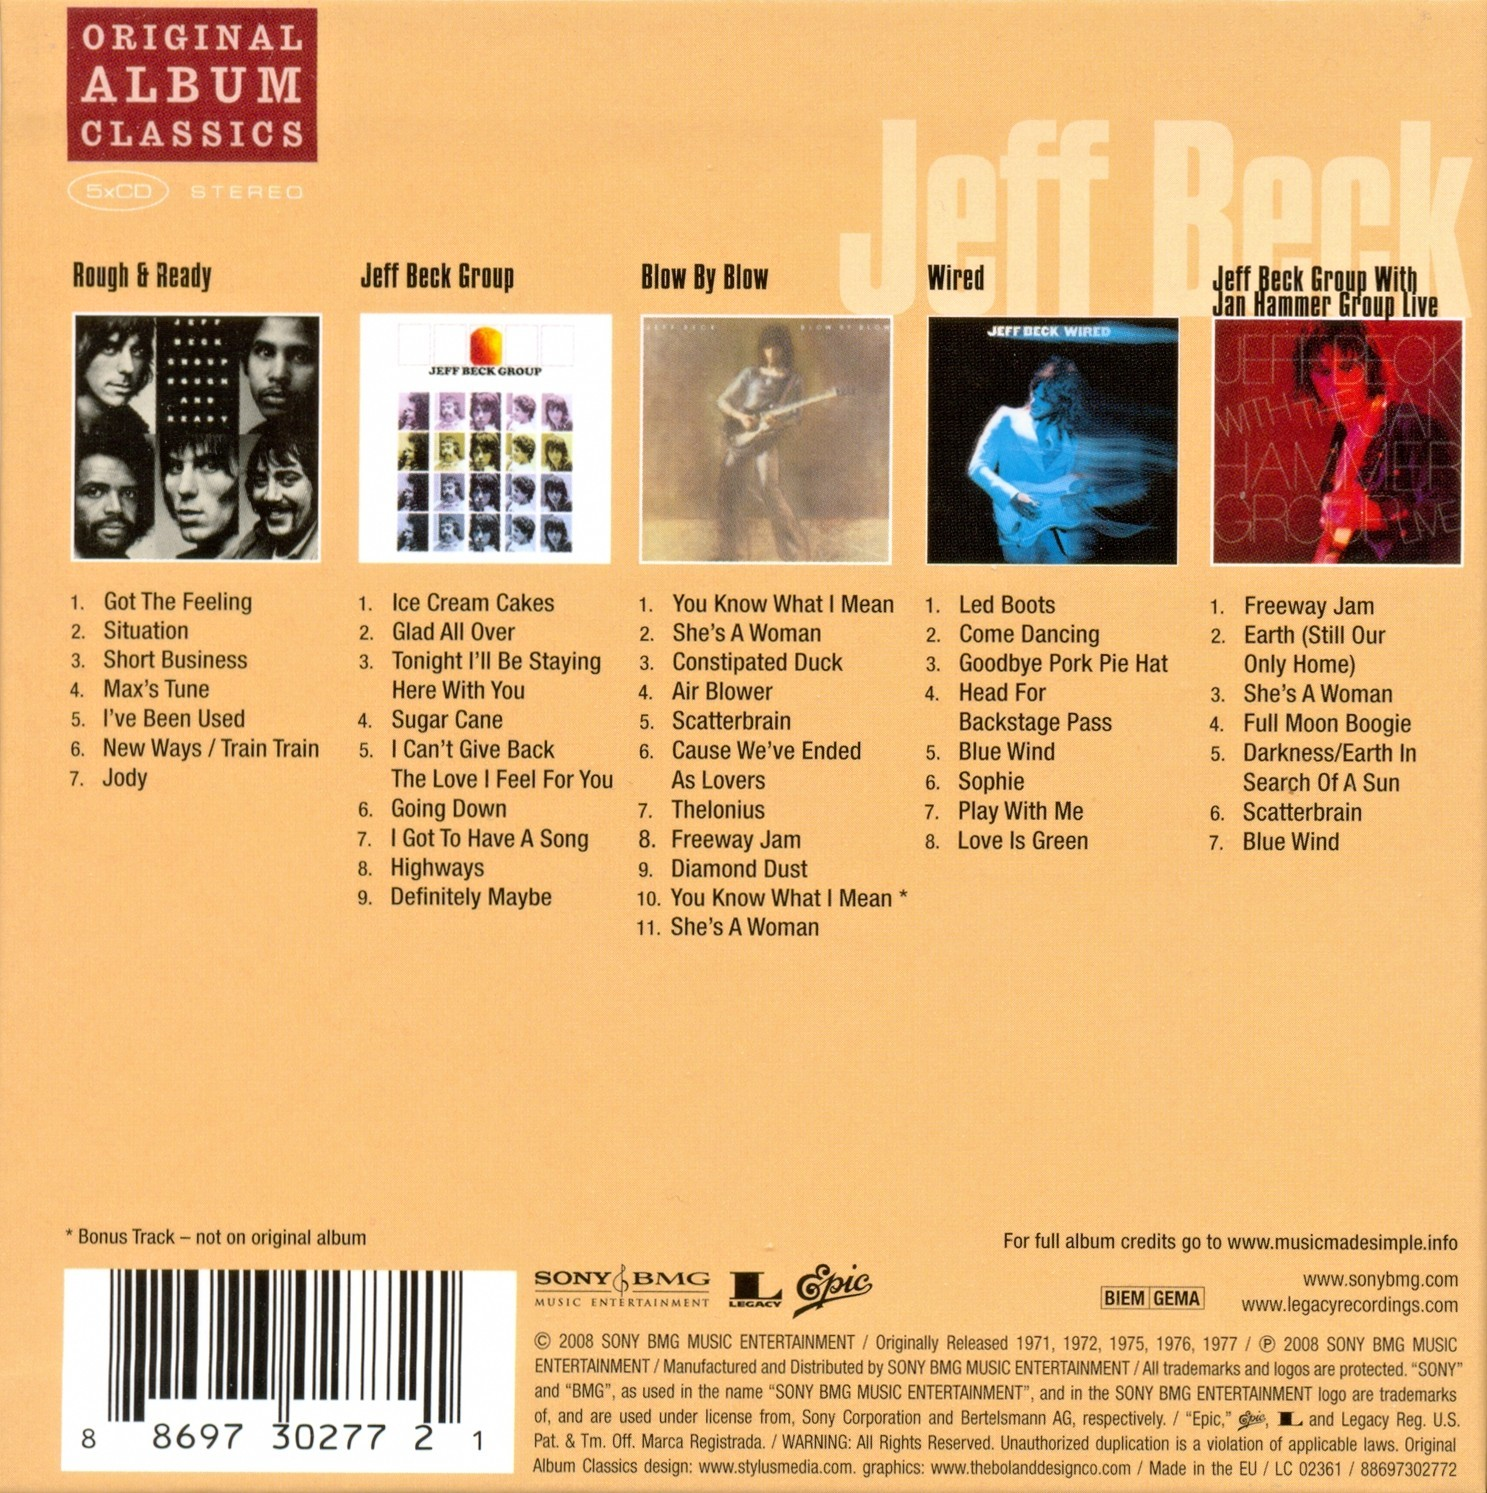 Ultimas compras - Página 2 Jeff_beck_-_original_album_classics_(box)_-_back